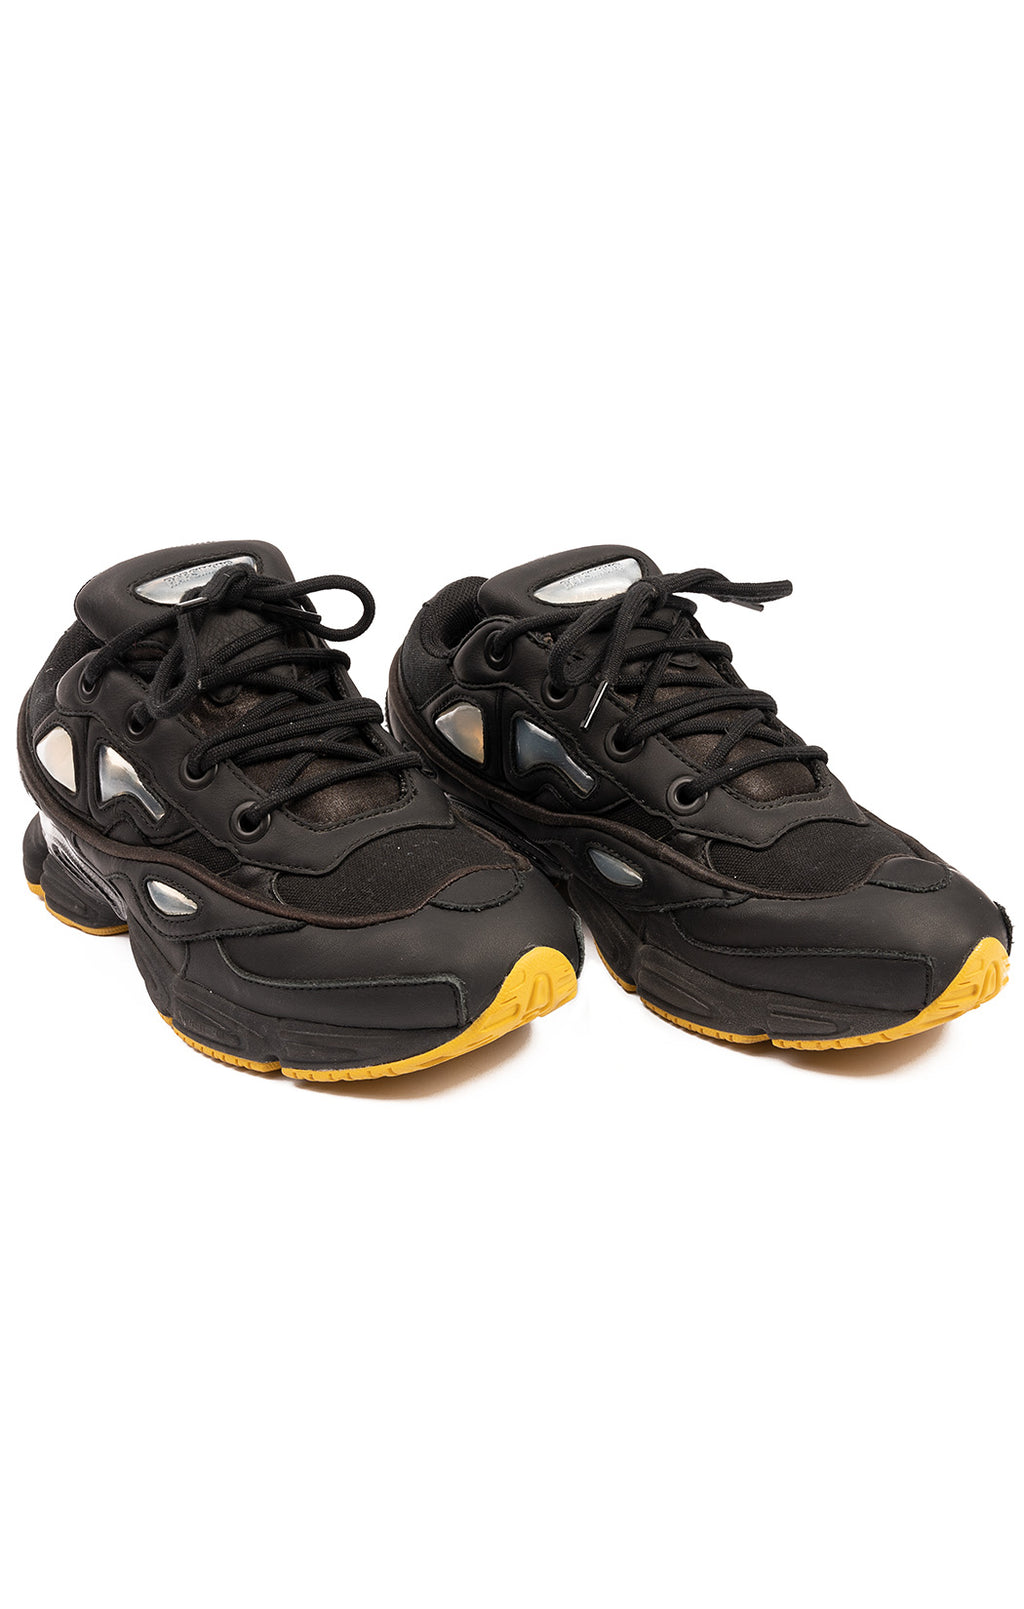 Black gray and yellow leather and fabric lace up tennis shoes